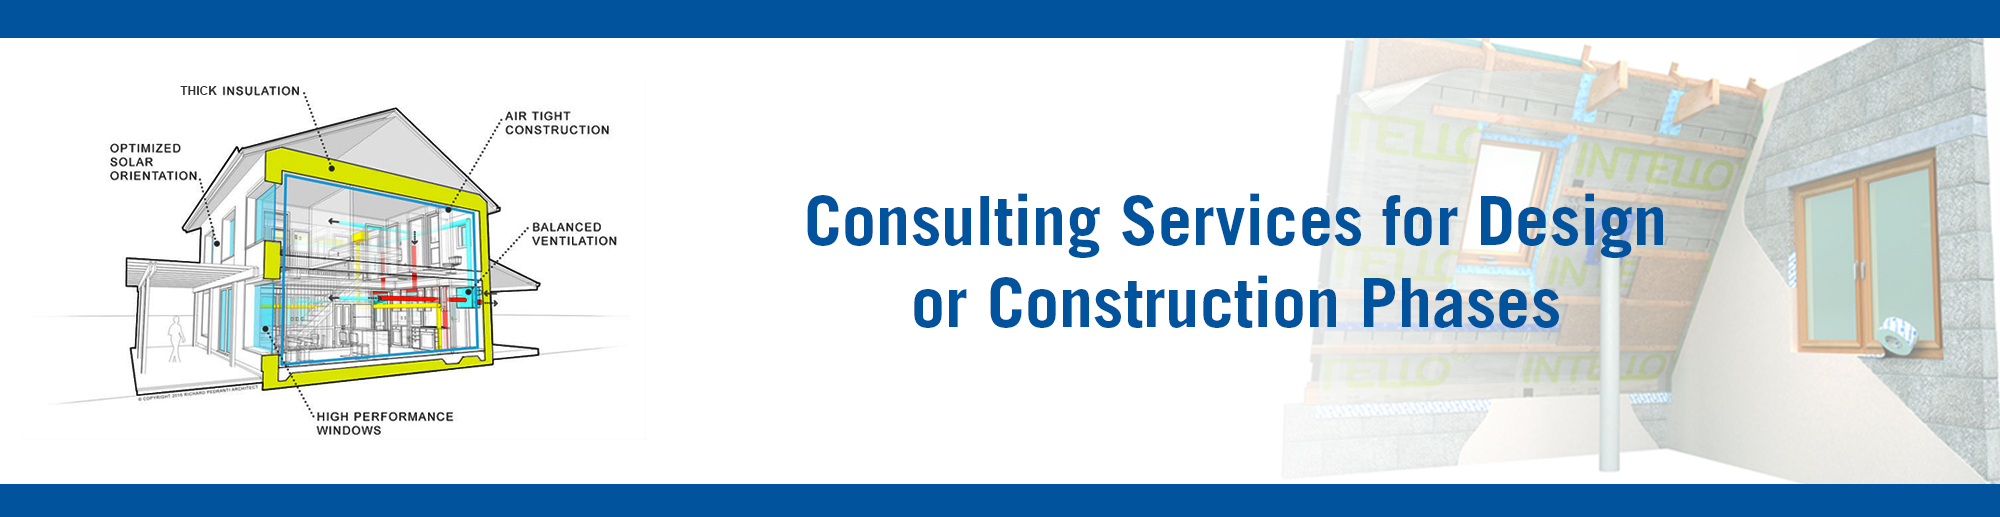 consulting services2